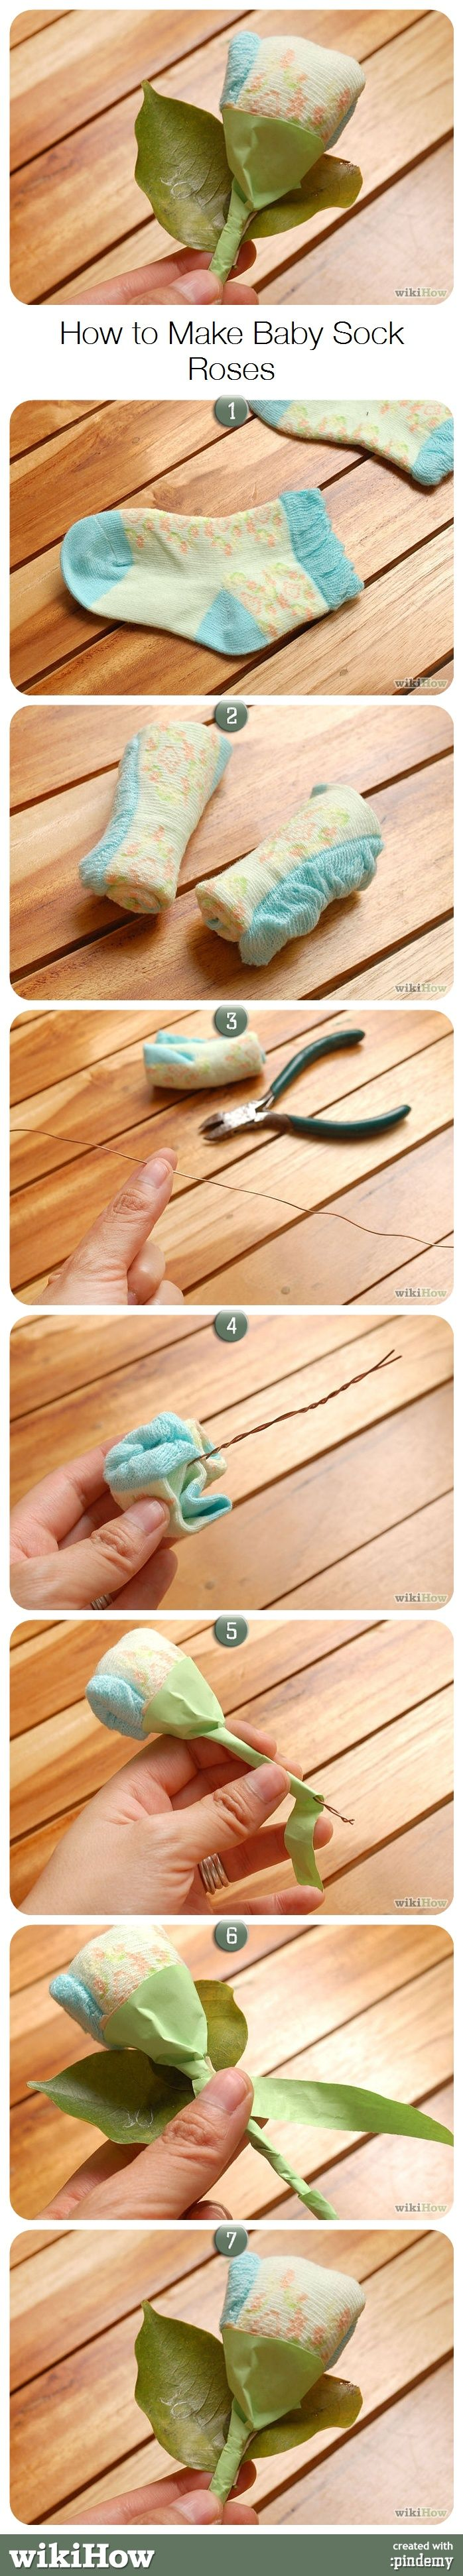 Best 25 baby sock corsage ideas on pinterest baby sock bouquet how to make baby sock roses negle Image collections